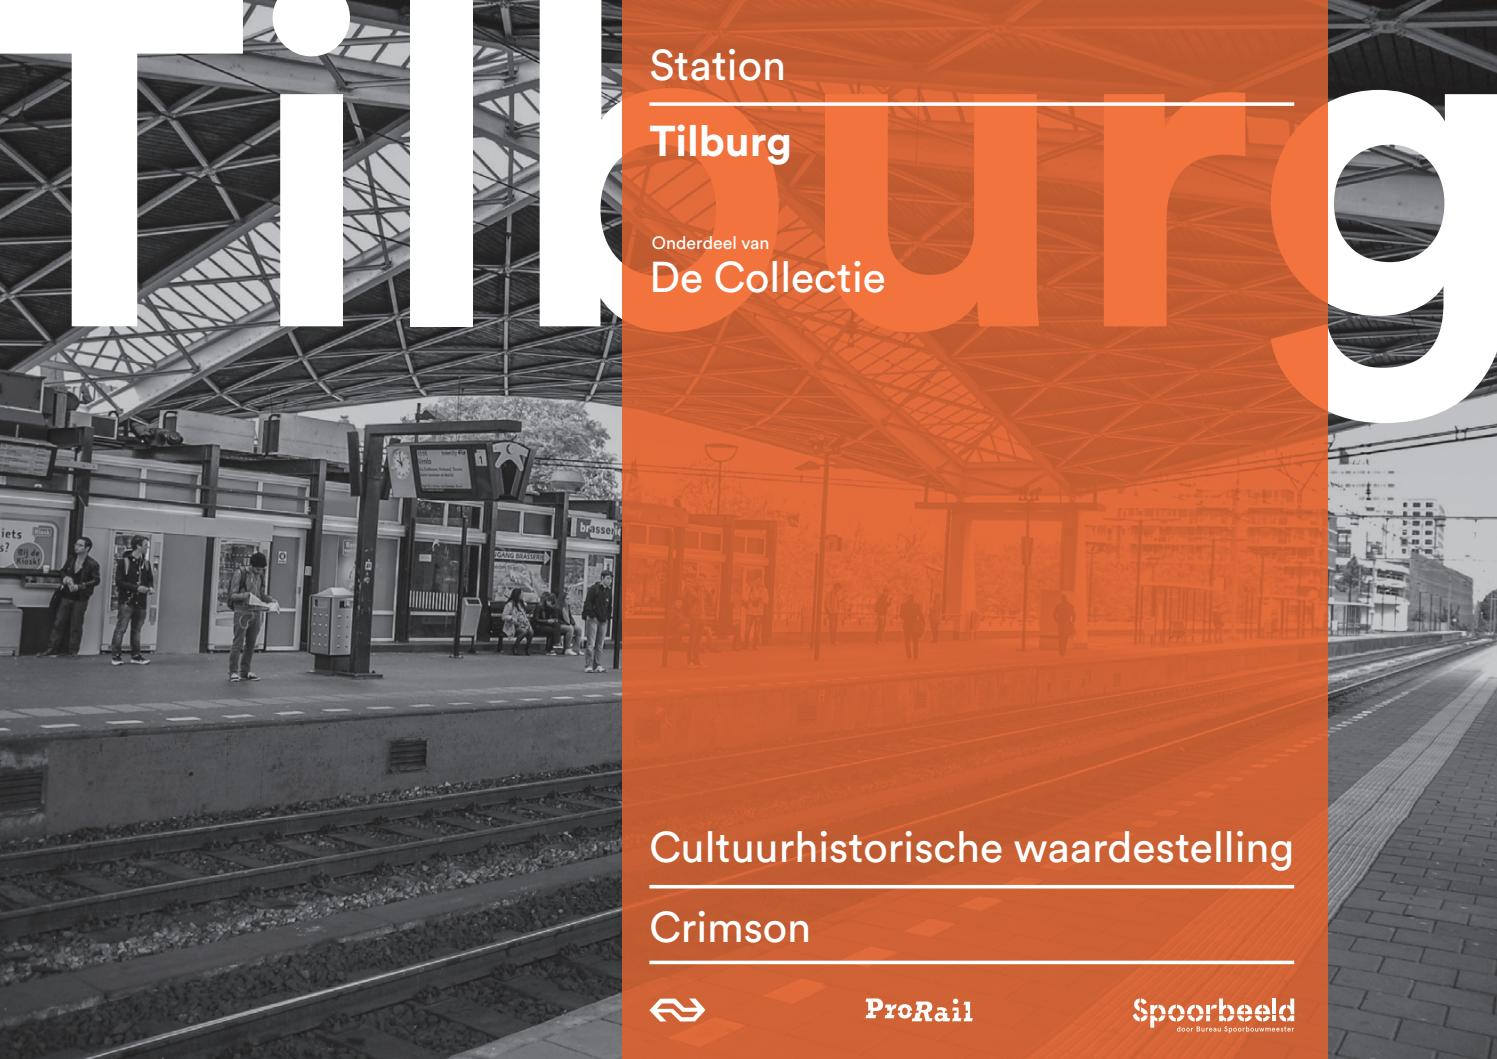 Waardestelling station Haarlem by Stations - issuu